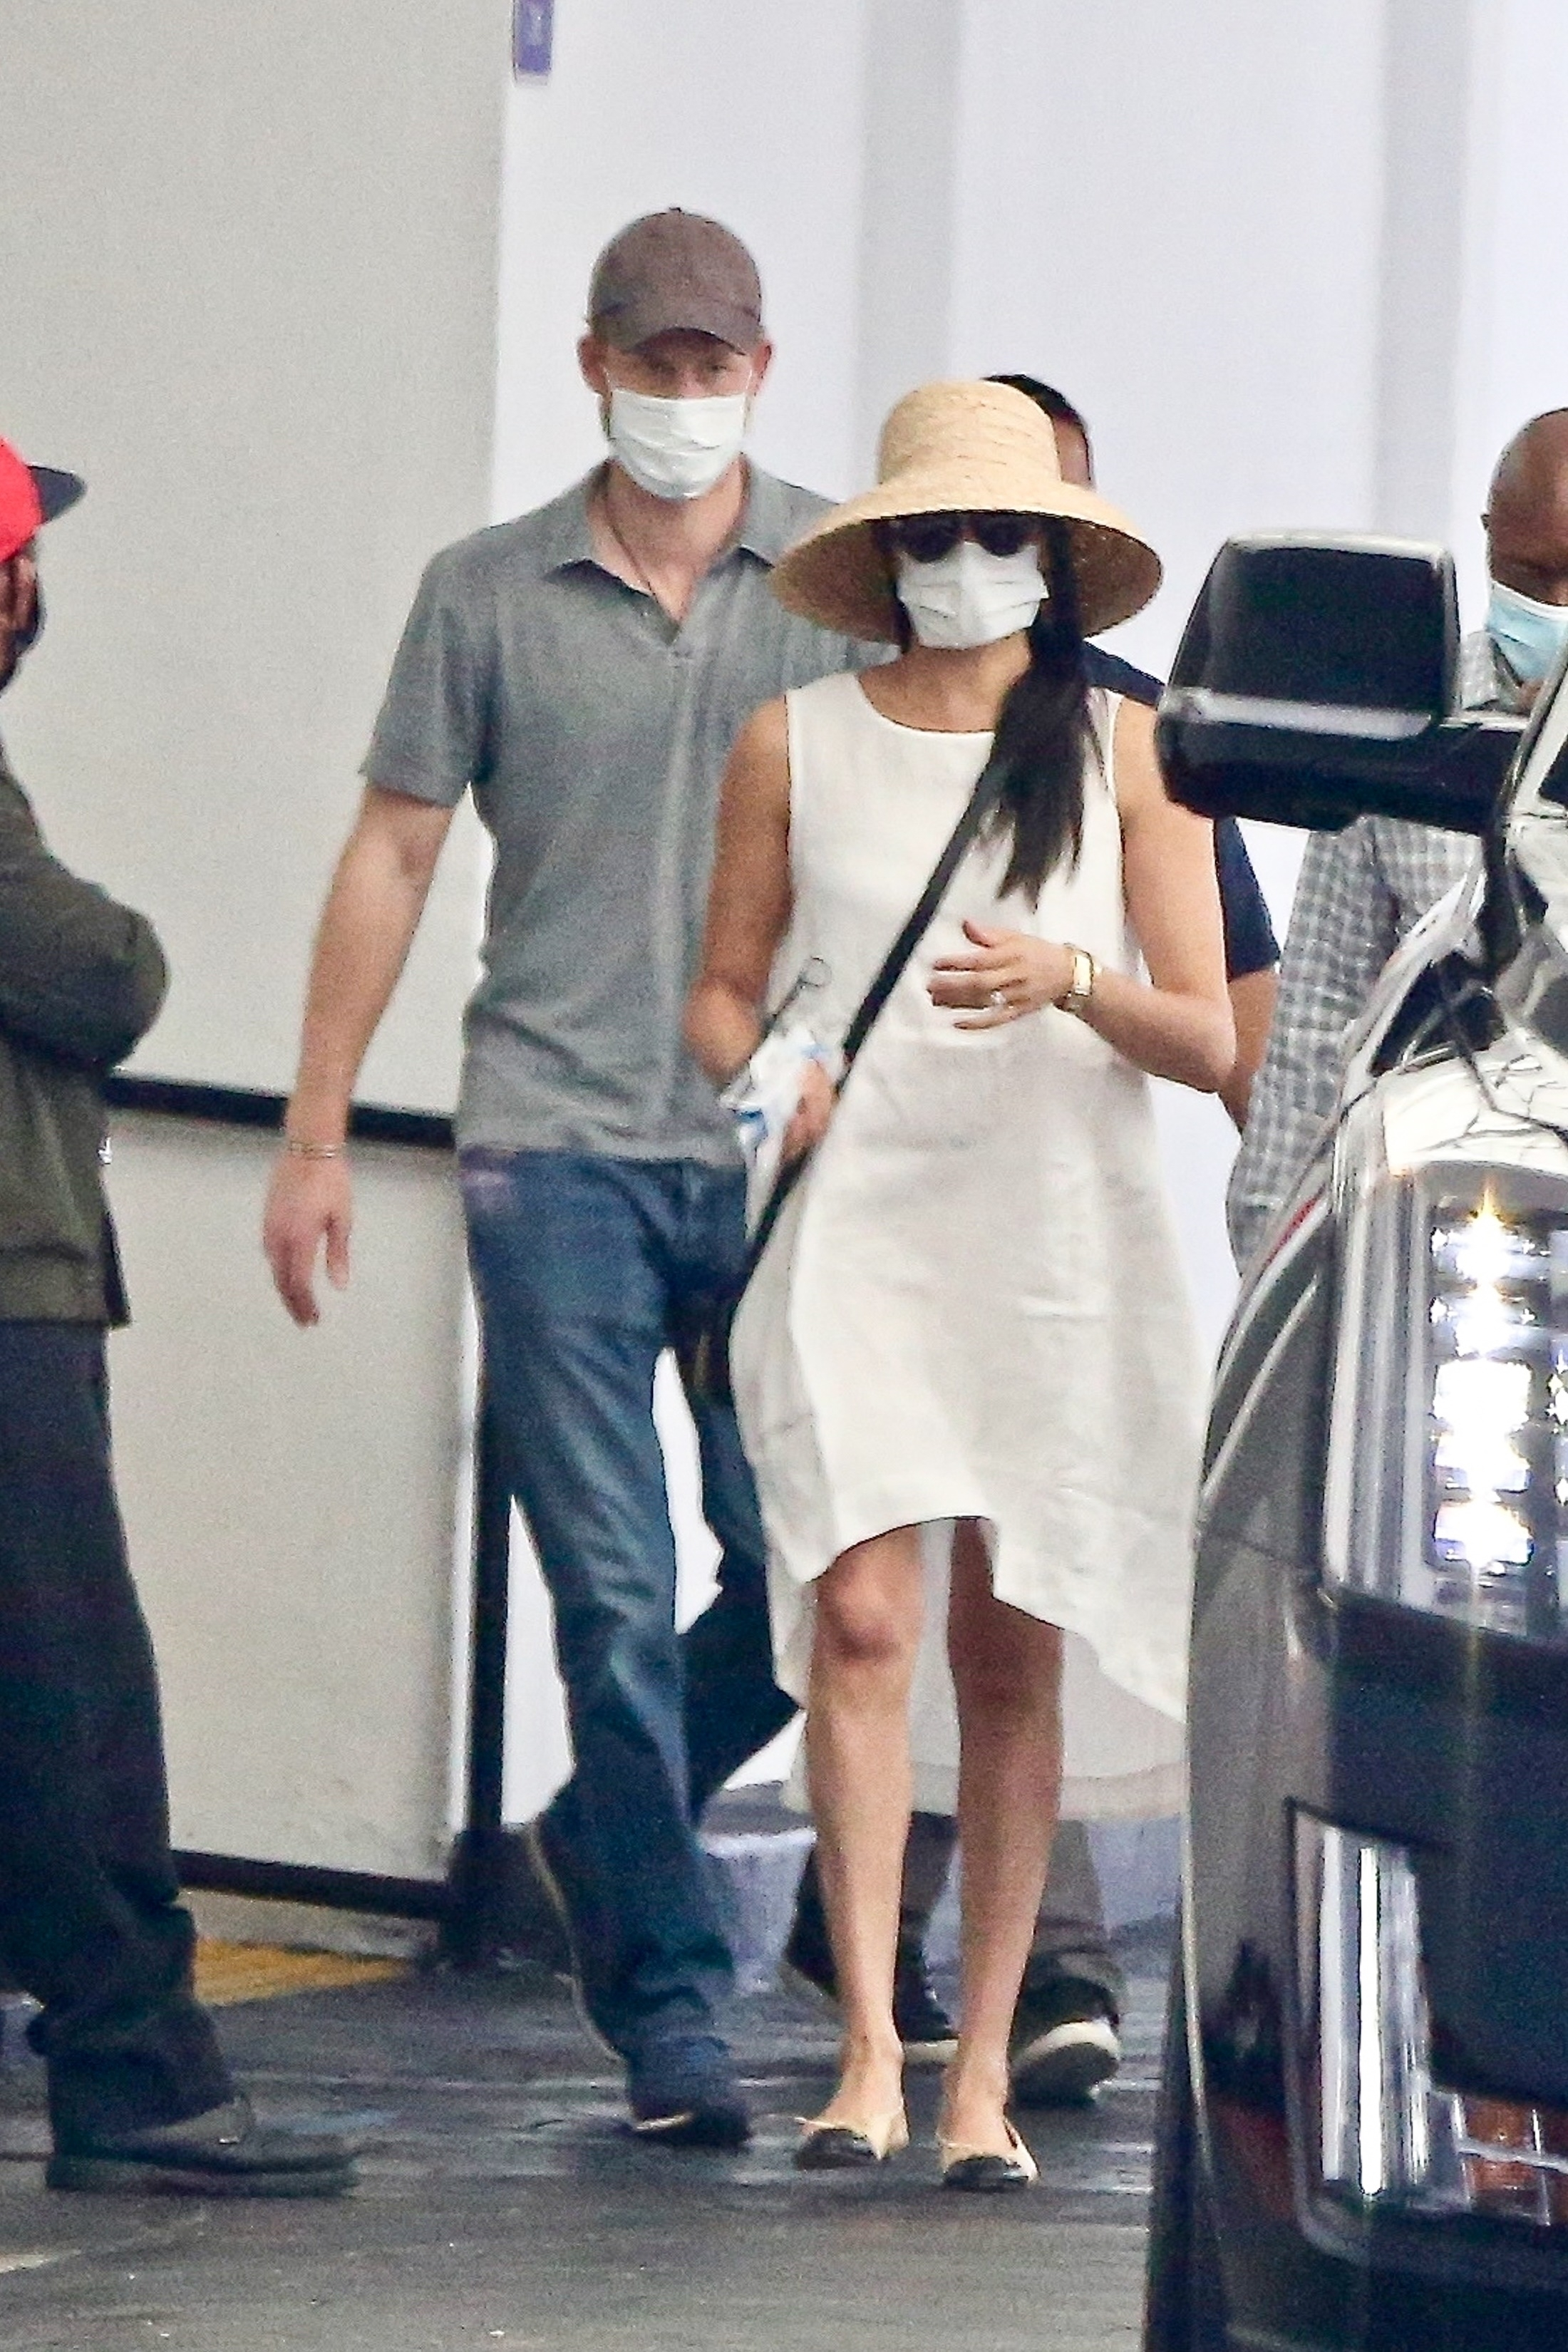 meghan markle looks chic in cream dress and sun hat while in beverly hills with prince harry etcanada com meghan markle looks chic in cream dress